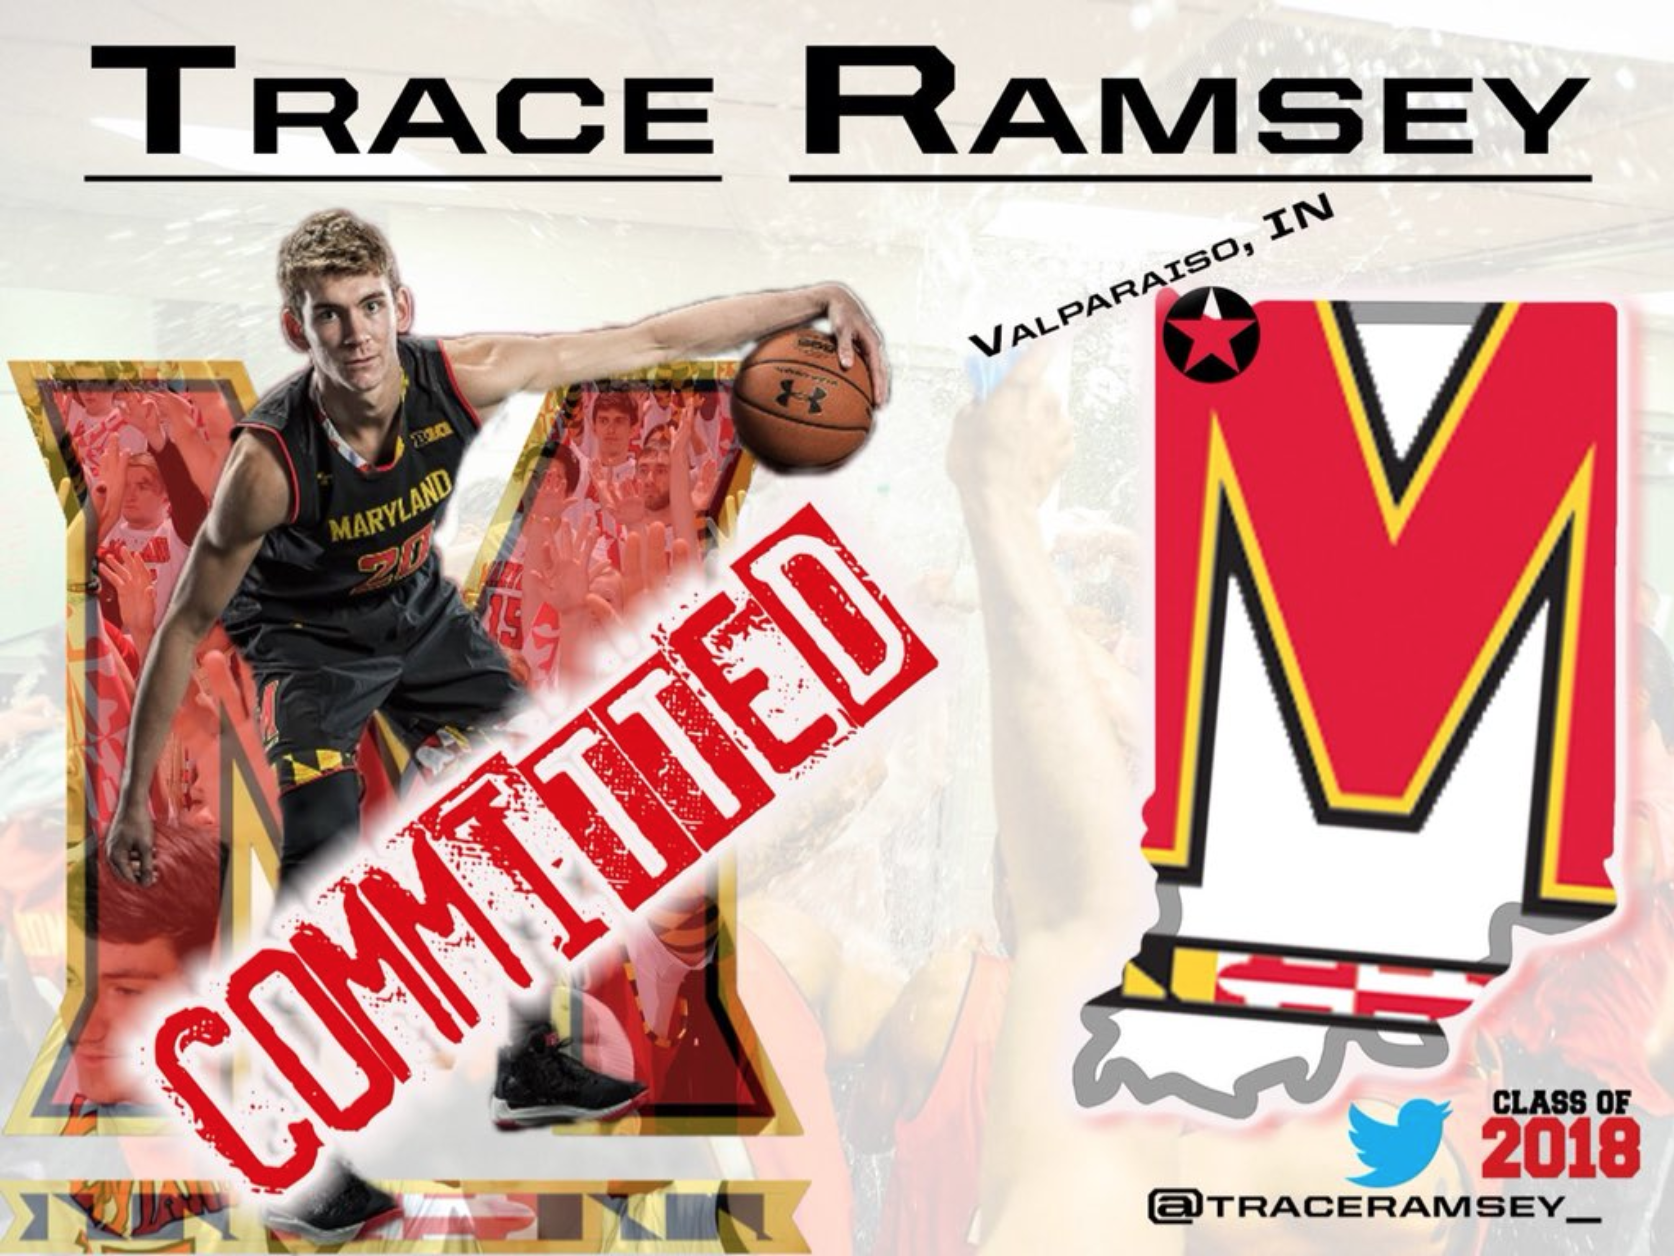 trace ramsey commitment